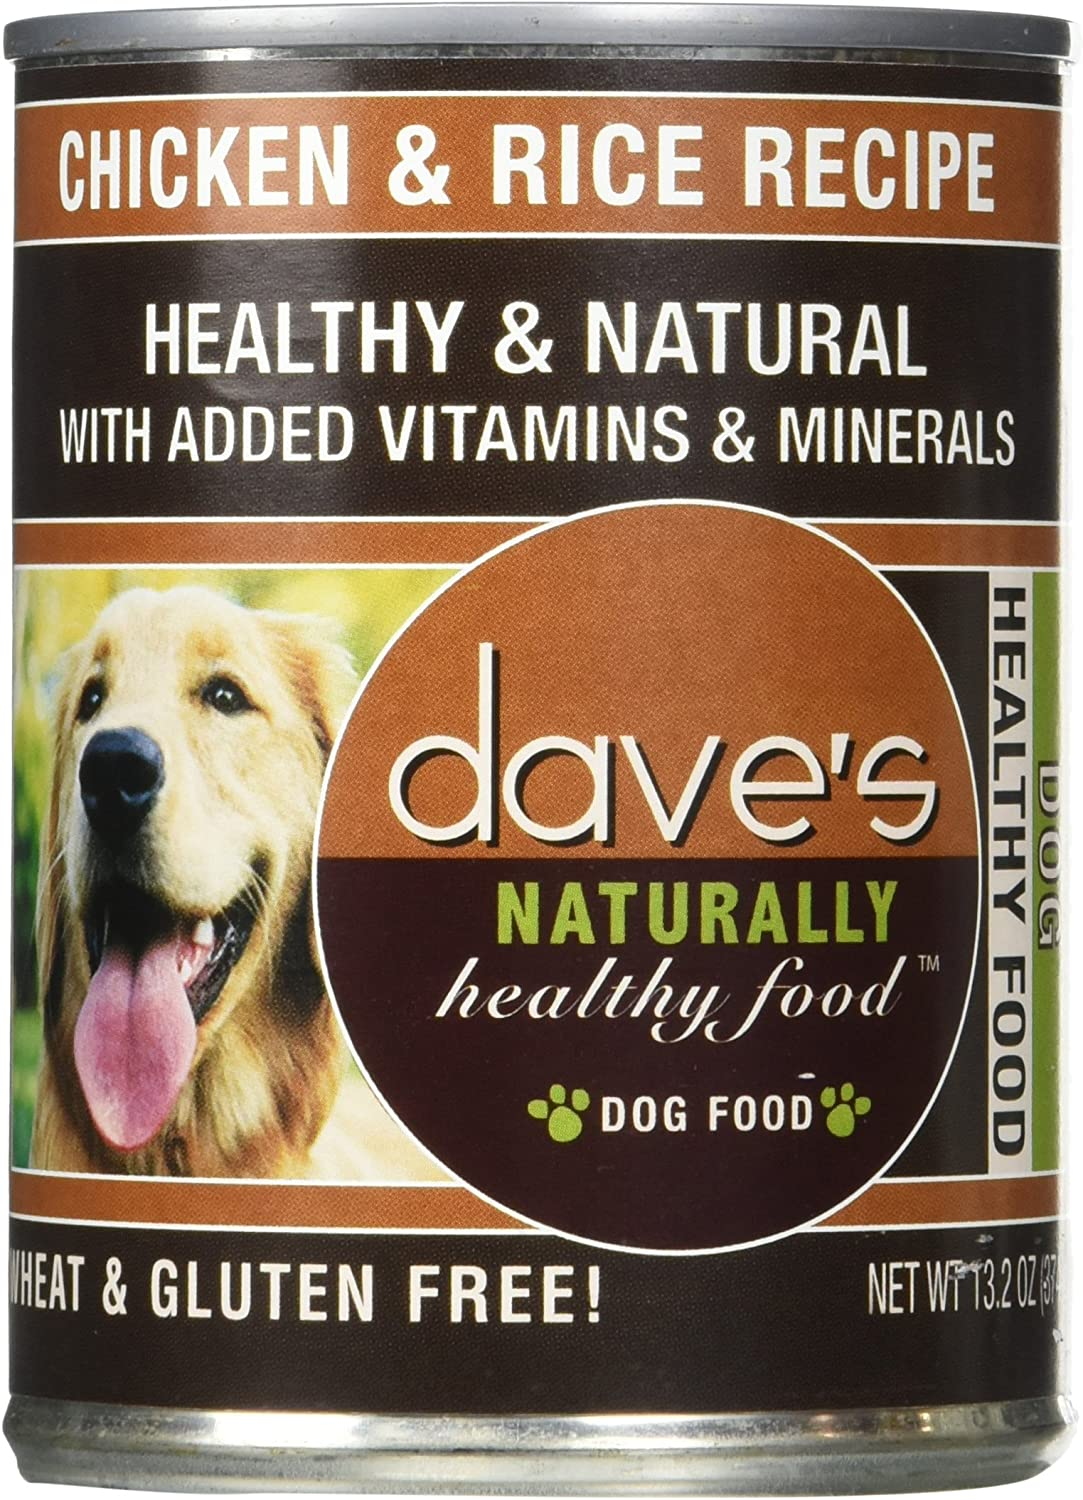 Dave'S Naturally Healthy